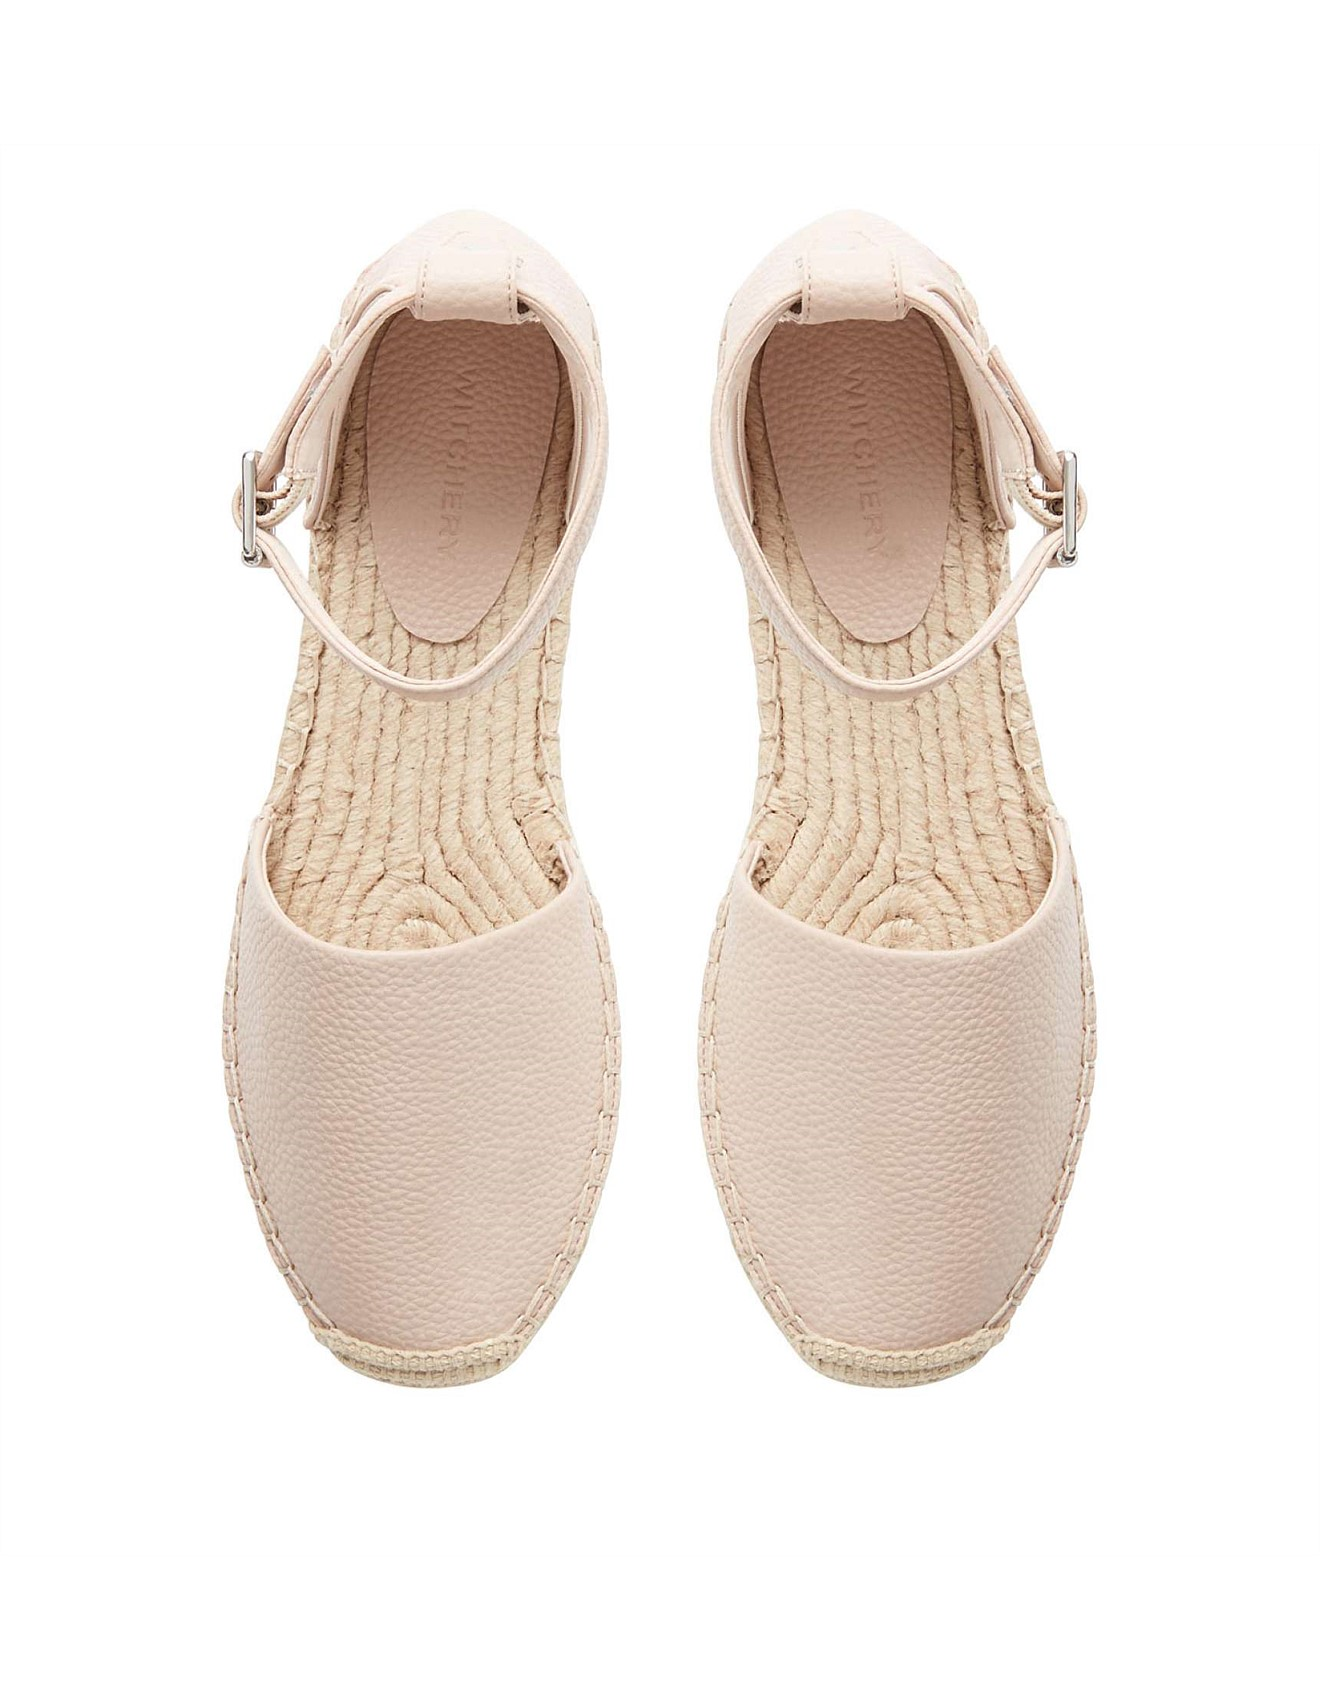 Witchery Shoes Kids